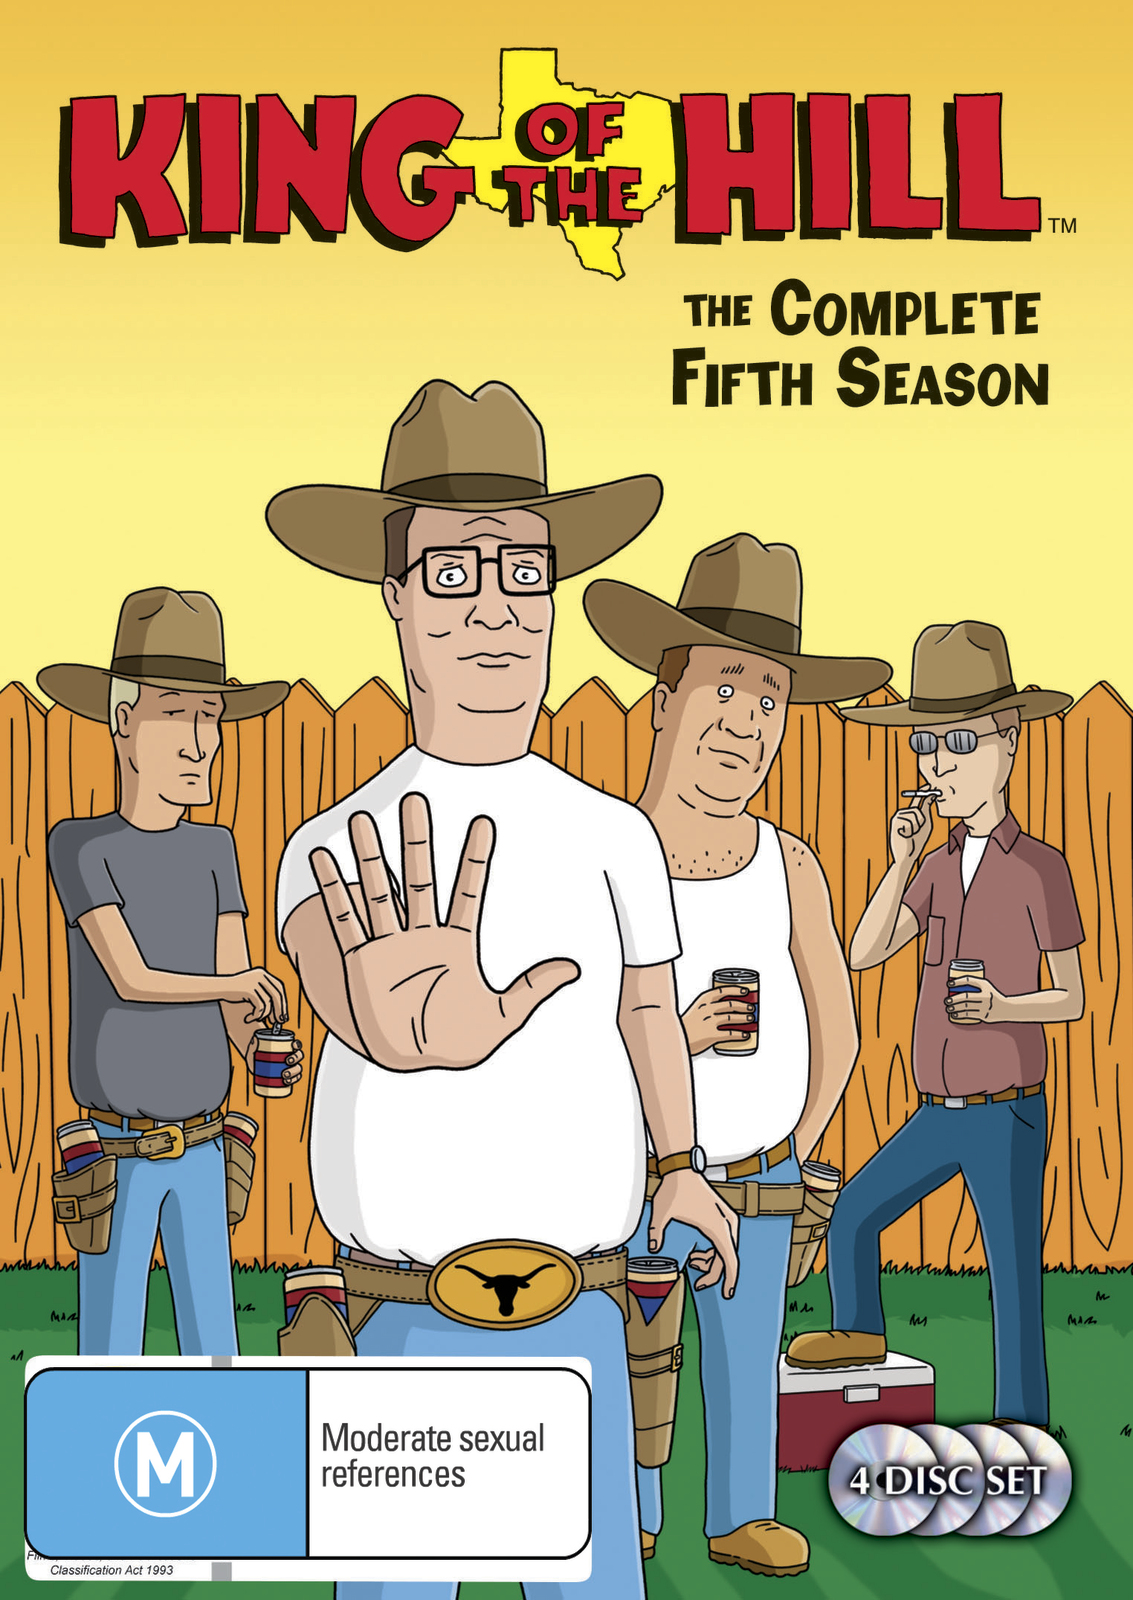 King of the Hill - Complete Season 5 (4 Disc Set) on DVD image